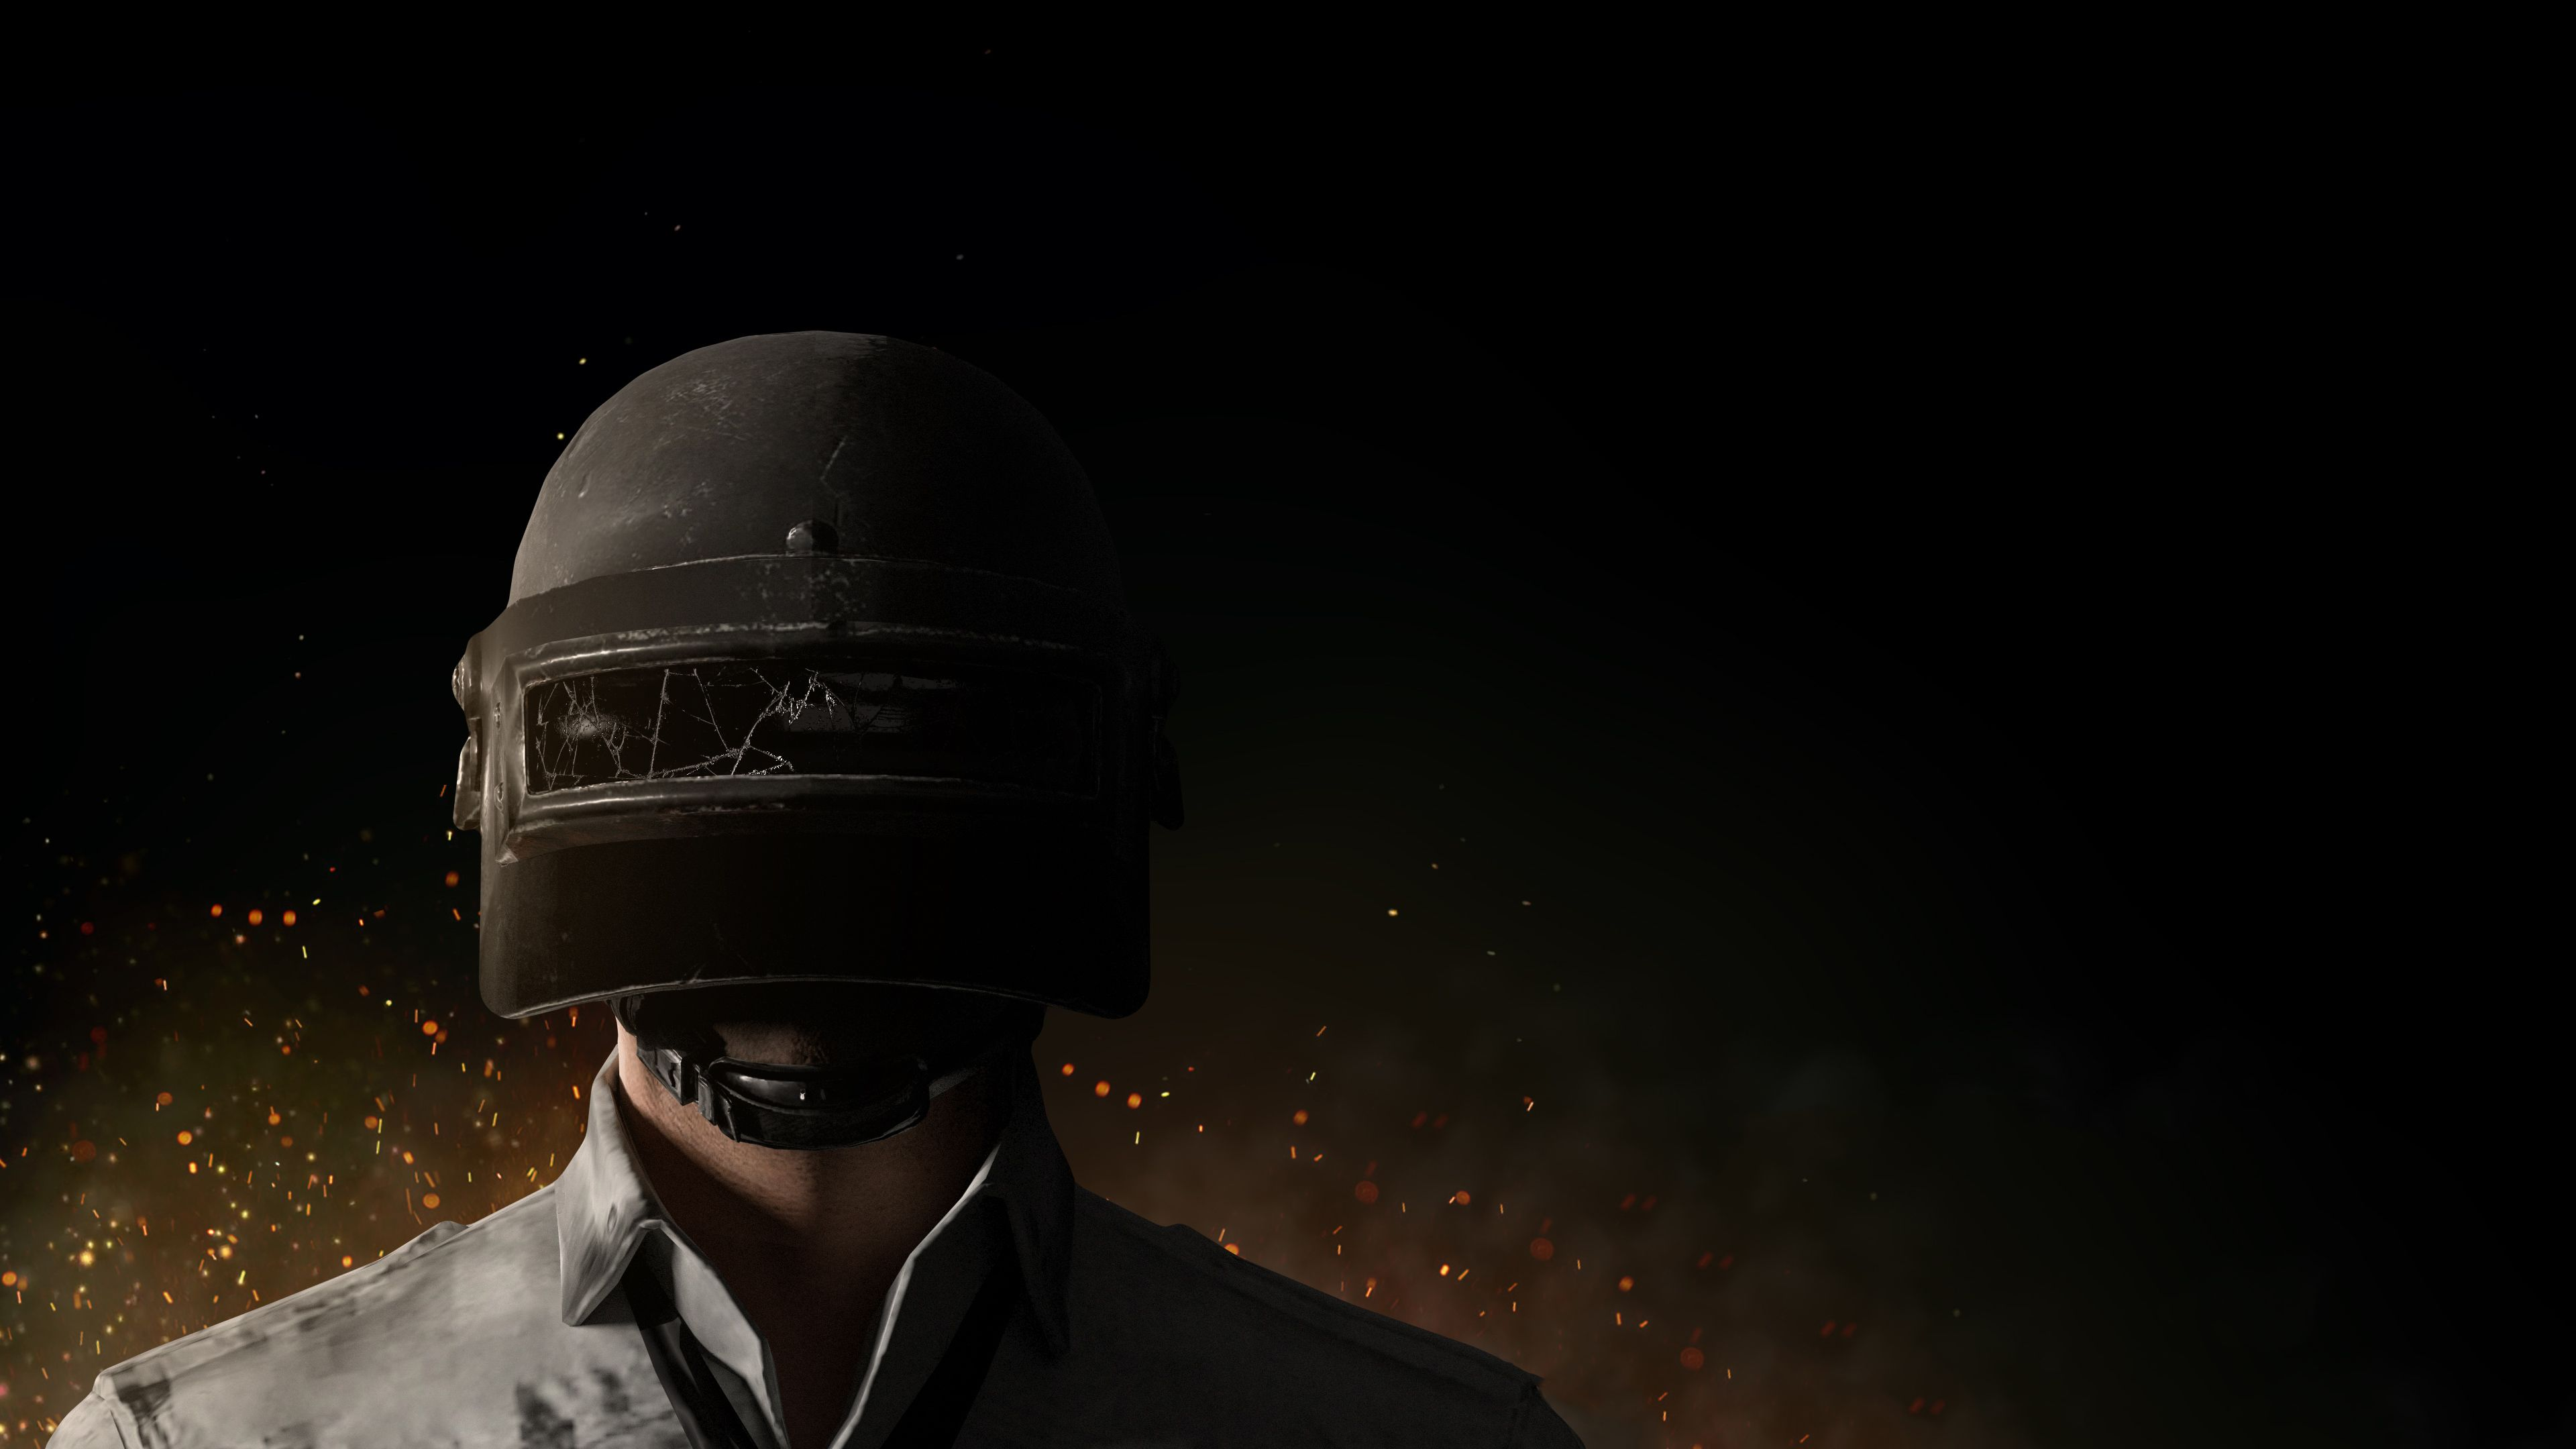 Pubg Mobile Helmet Wallpaper Pubg Pubgwallpapers: PUBG Helmet Guy 4k Pubg Wallpapers, Playerunknowns